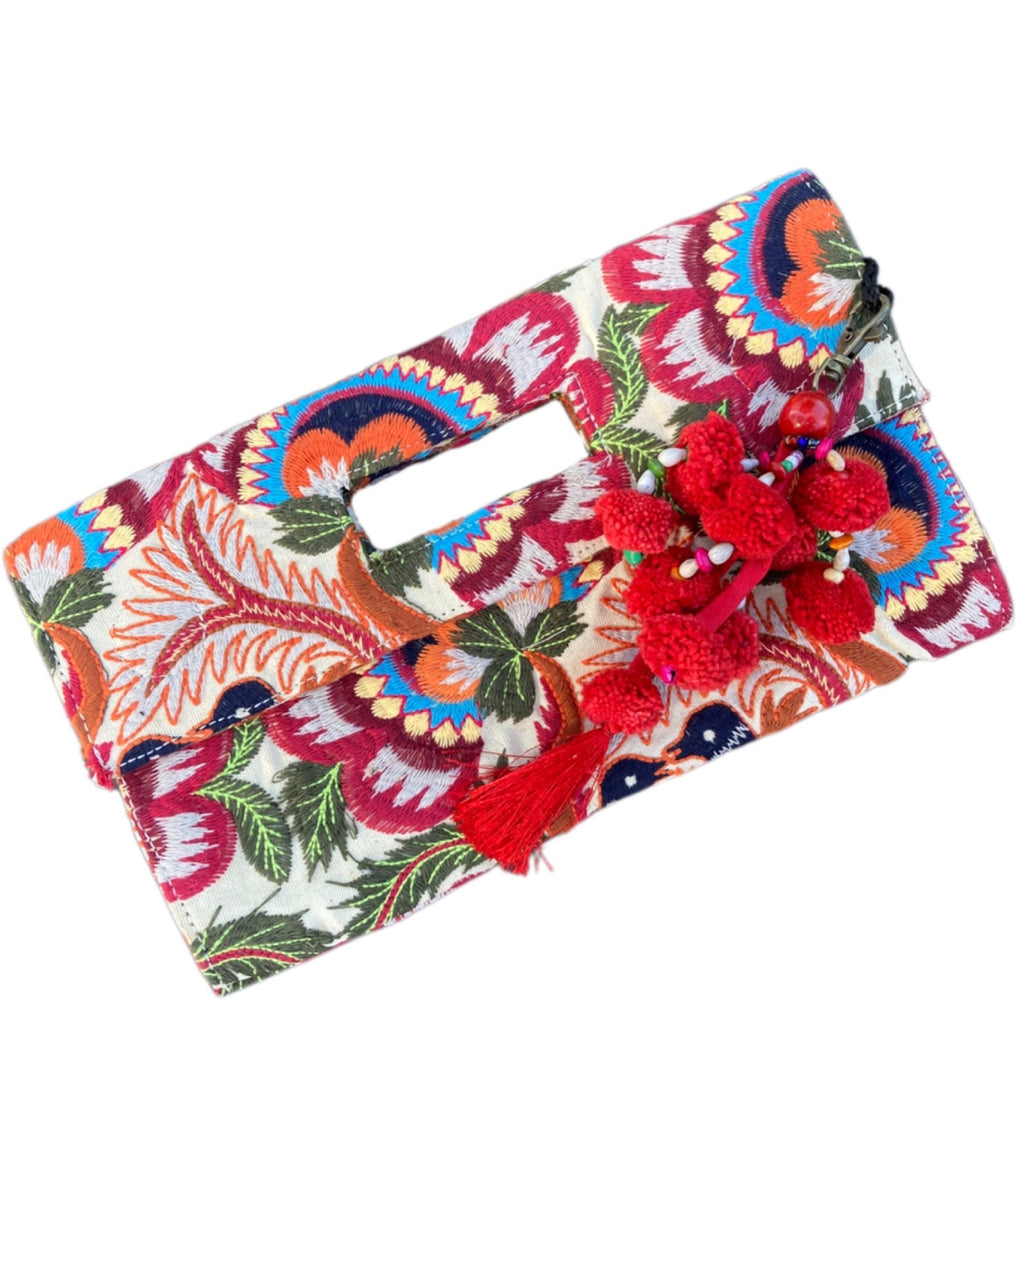 Bailee Embroidery Clutch